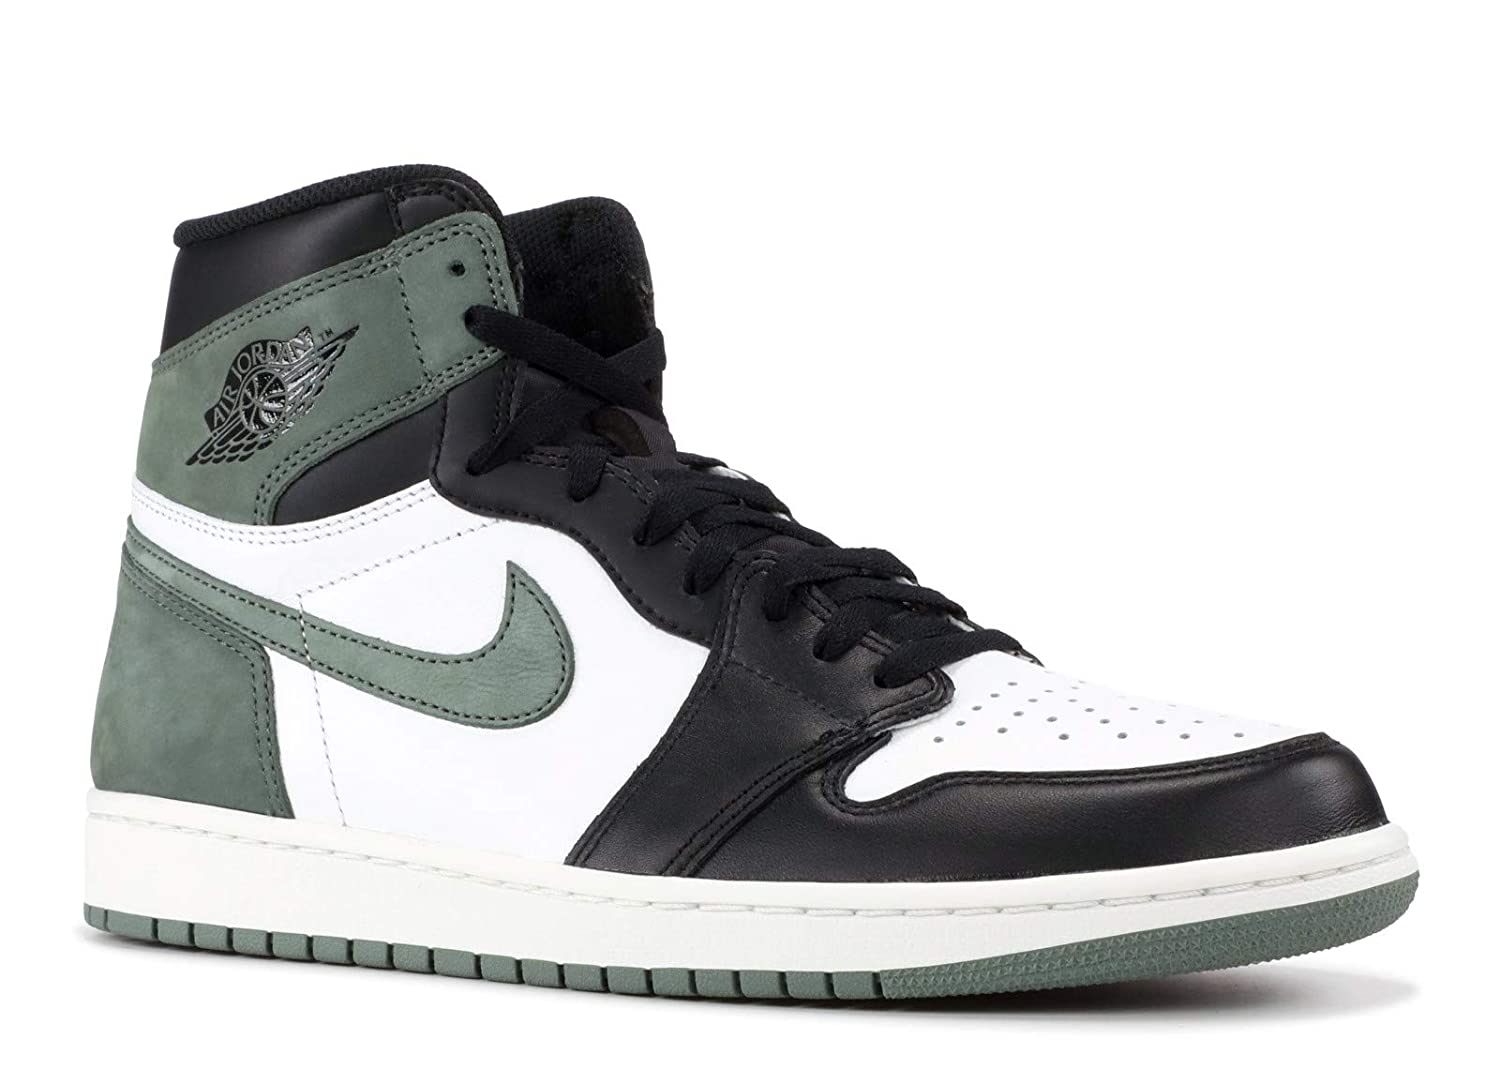 2d1e6d2a2ba031 Amazon.com  Air Jordan 1 Retro  Clay Green  - 555088-135 - Size 11.5  Shoes